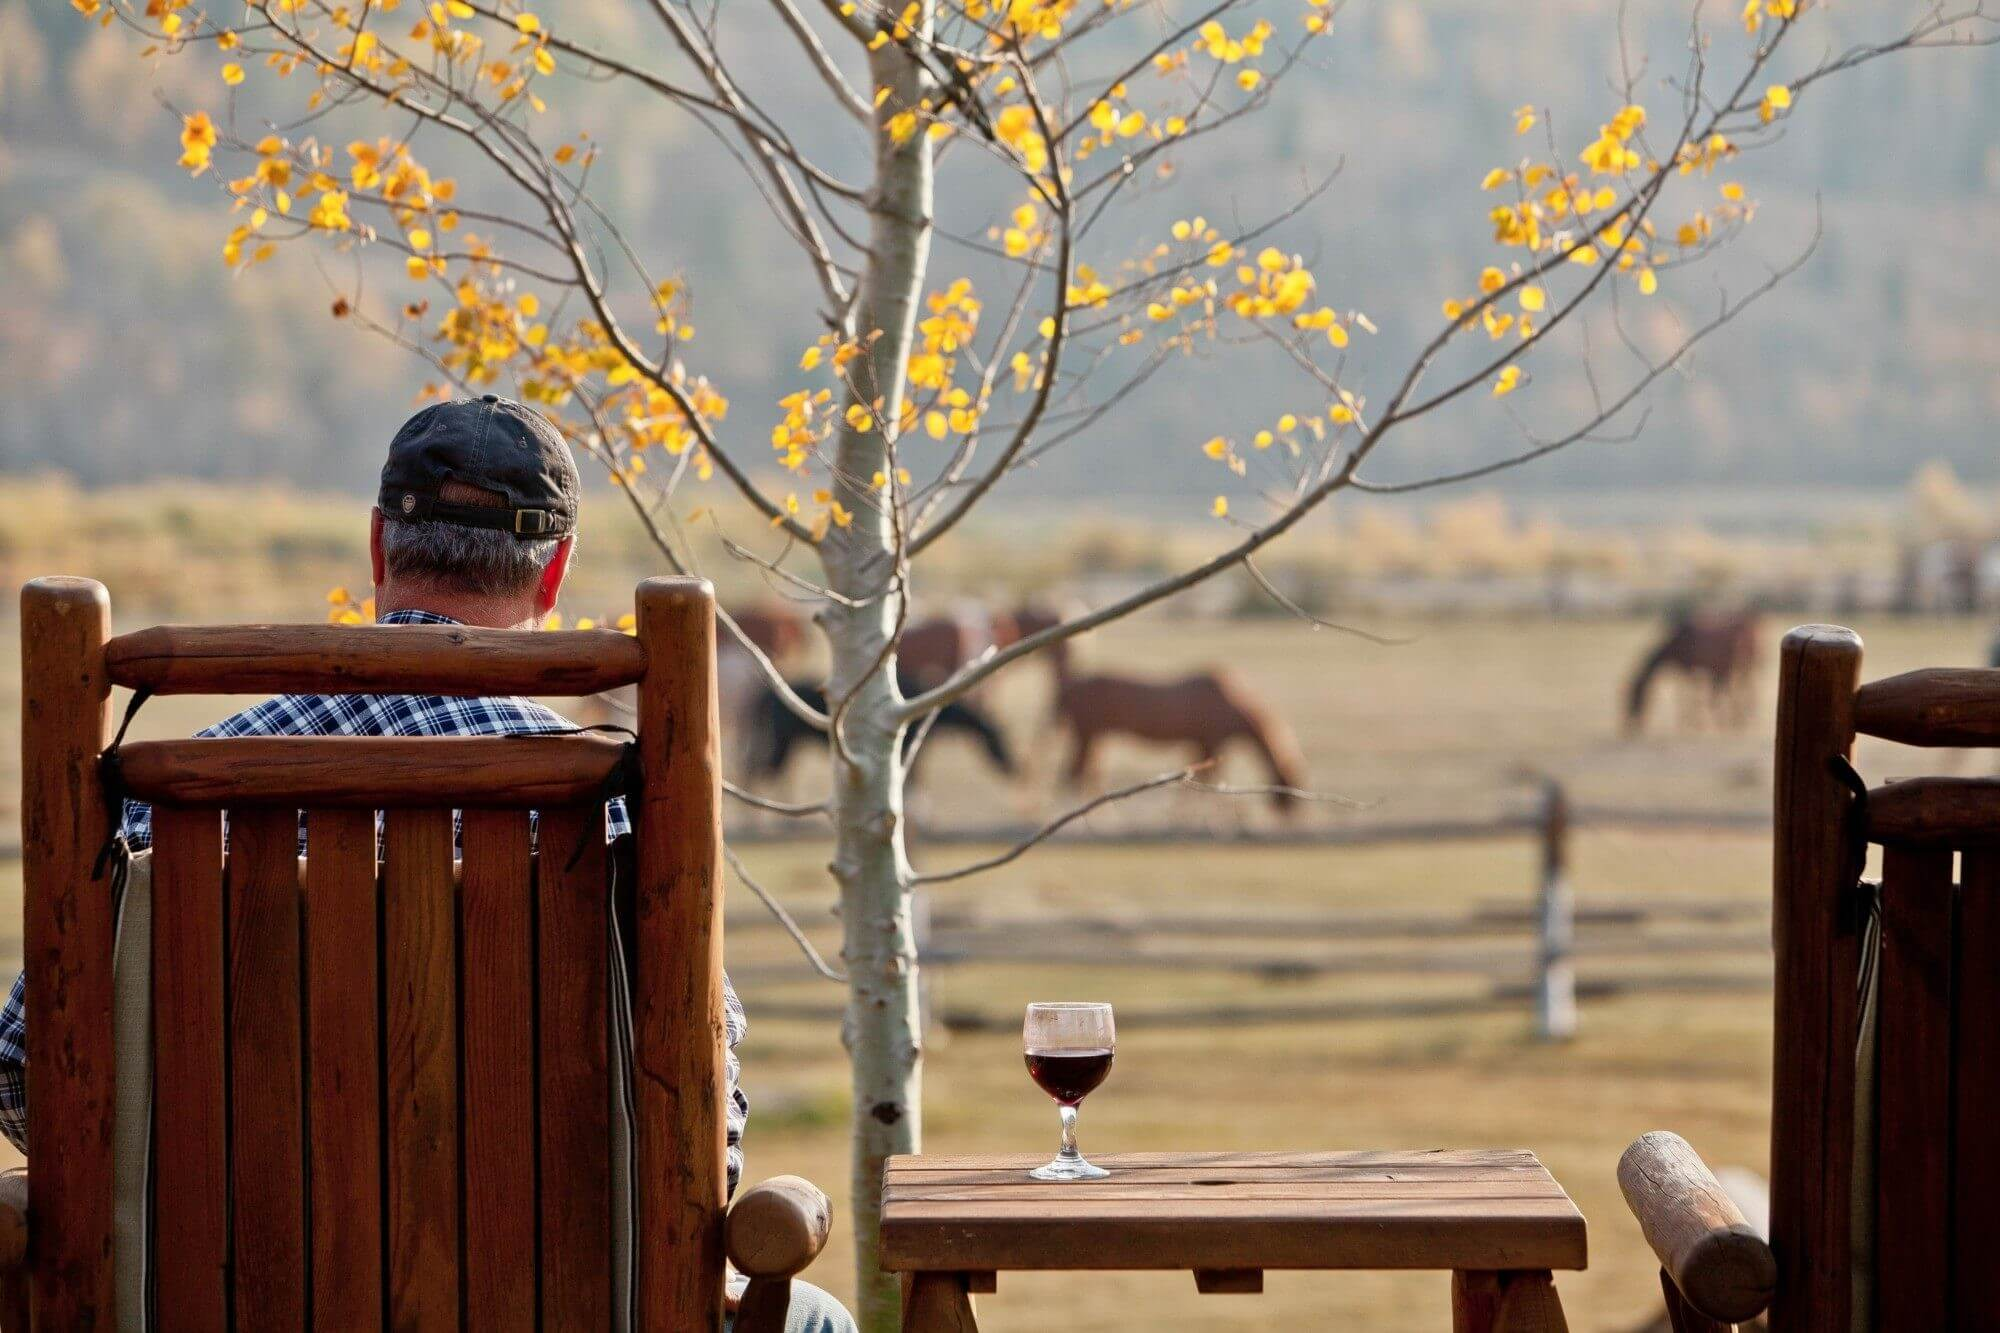 Sit back and have a glass of wine or a beverage overlooking the pasture during your Jackson Hole family vacation at a dude ranch.